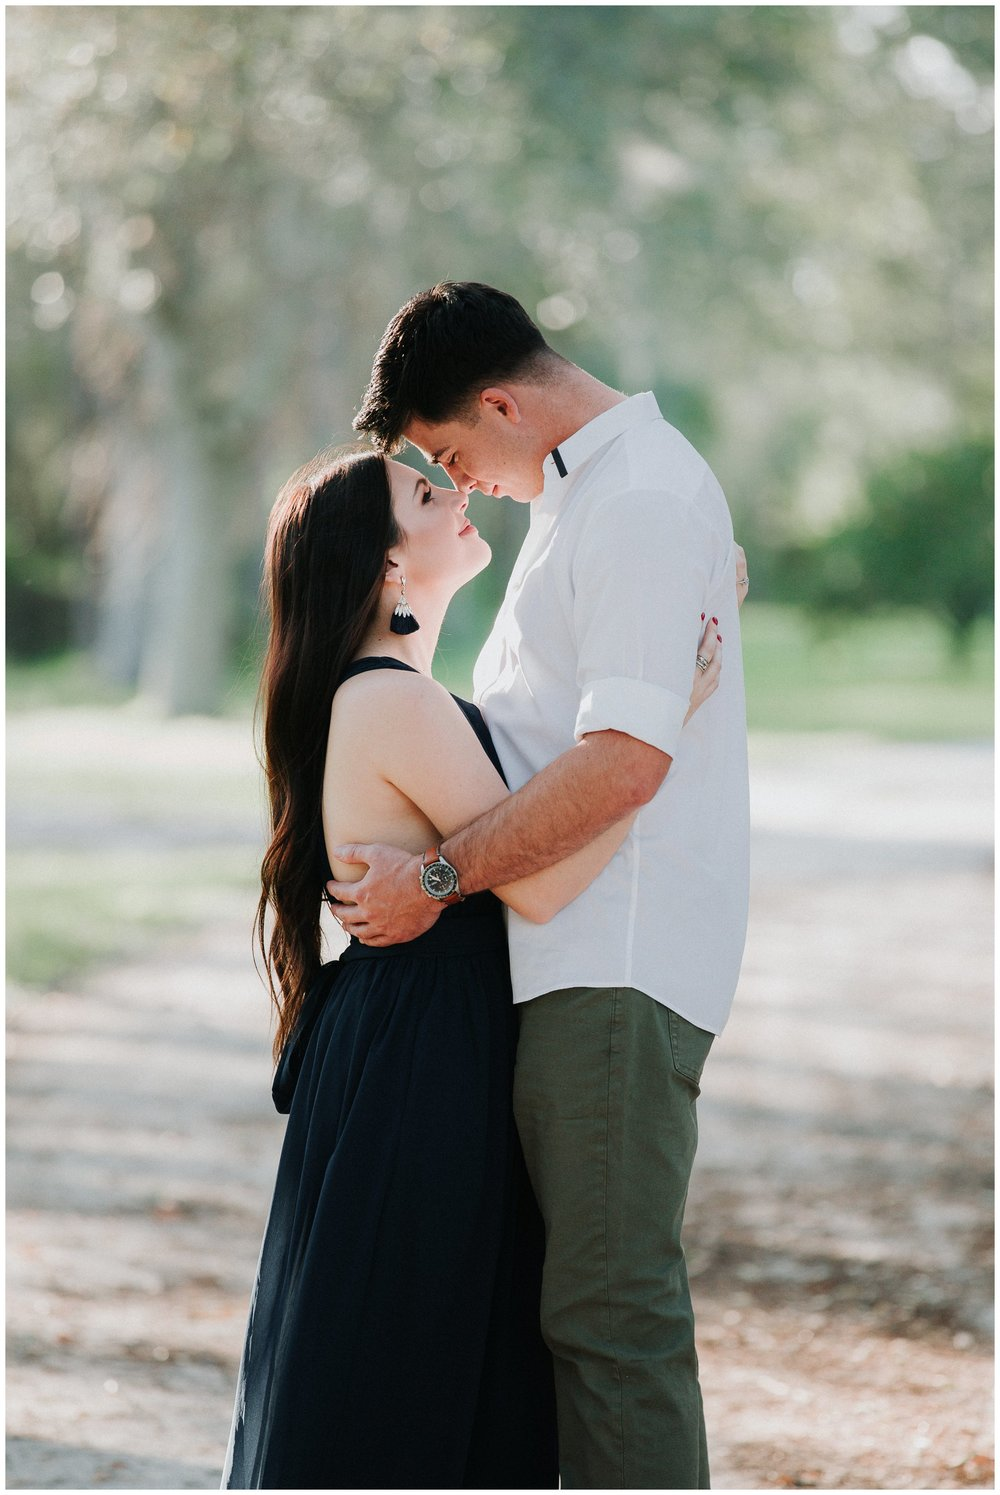 BMR Stables Wedding-BMR Stables Engagement Session-Jupiter Wedding Photographer-South Florida Wedding Photographer-Palm Beach Wedding Photographer-Jupiter Engagement Photos- Kimberly Smith Photography_0009.jpg